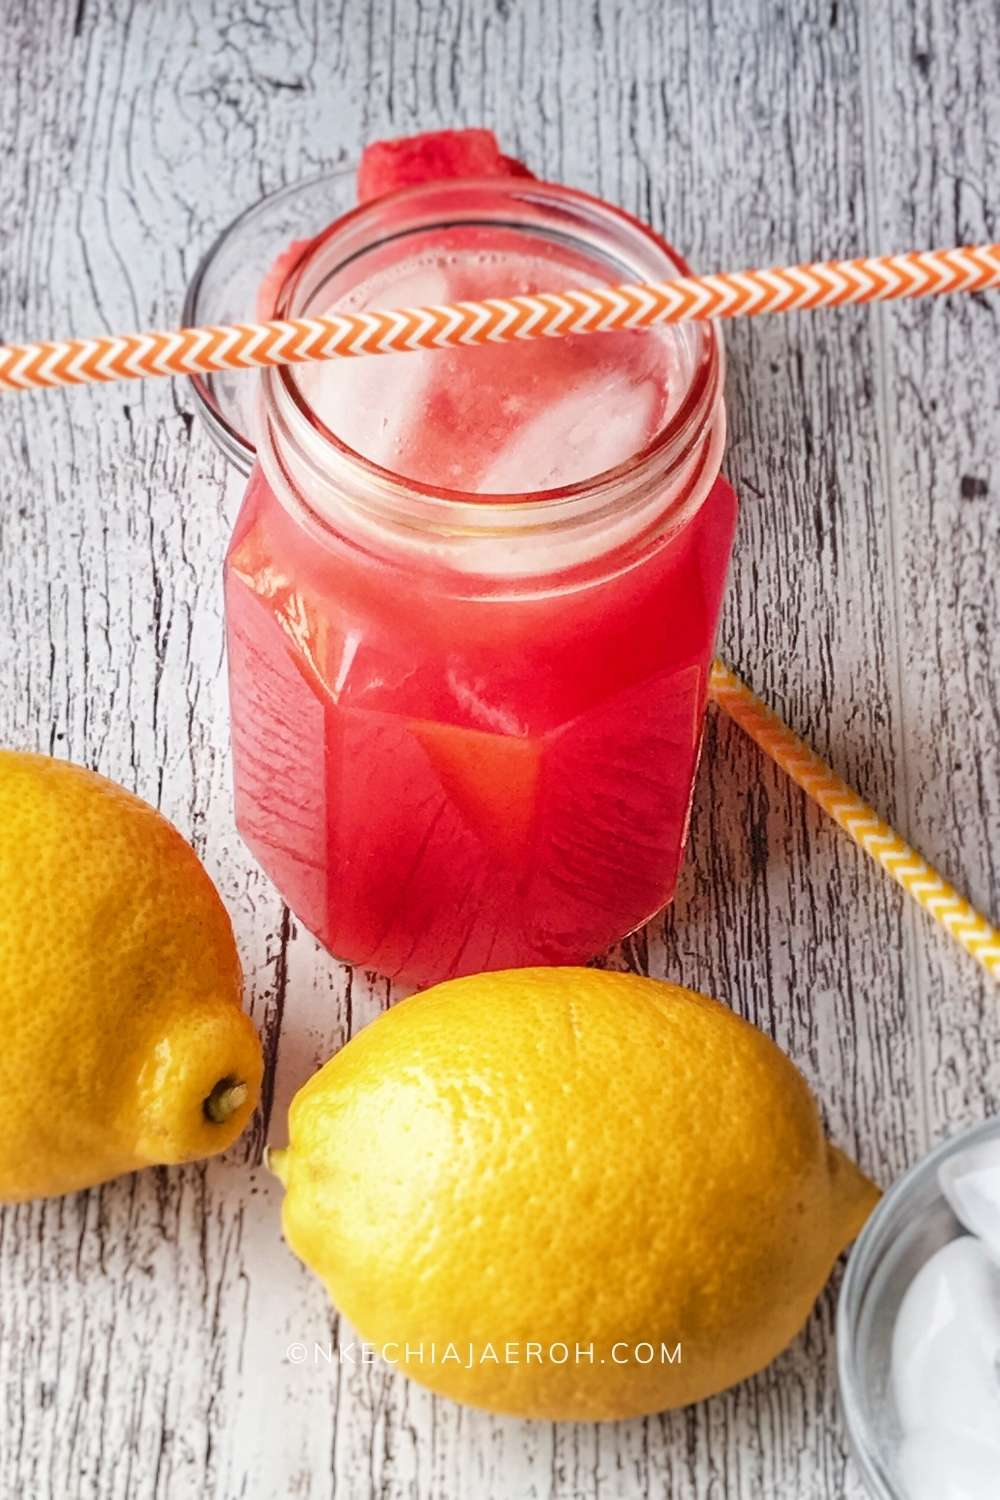 This immune-boosting and healthy watermelon lemonade is easy to make, and with only 3-ingredients – watermelon, lemon, and honey, you are all set! This is the best summer drink ever, very refreshing and invigorating; this easy and simple drink is kids-friendly, sugar-free, vegan, gluten-free, and low calorie! This is the best non-alcoholic drink for the entire family for the hot season and it is a crowd-pleaser. #watermelondrink #lemonade #Summerdrink #watermelon #summertimedrink #healthydrink